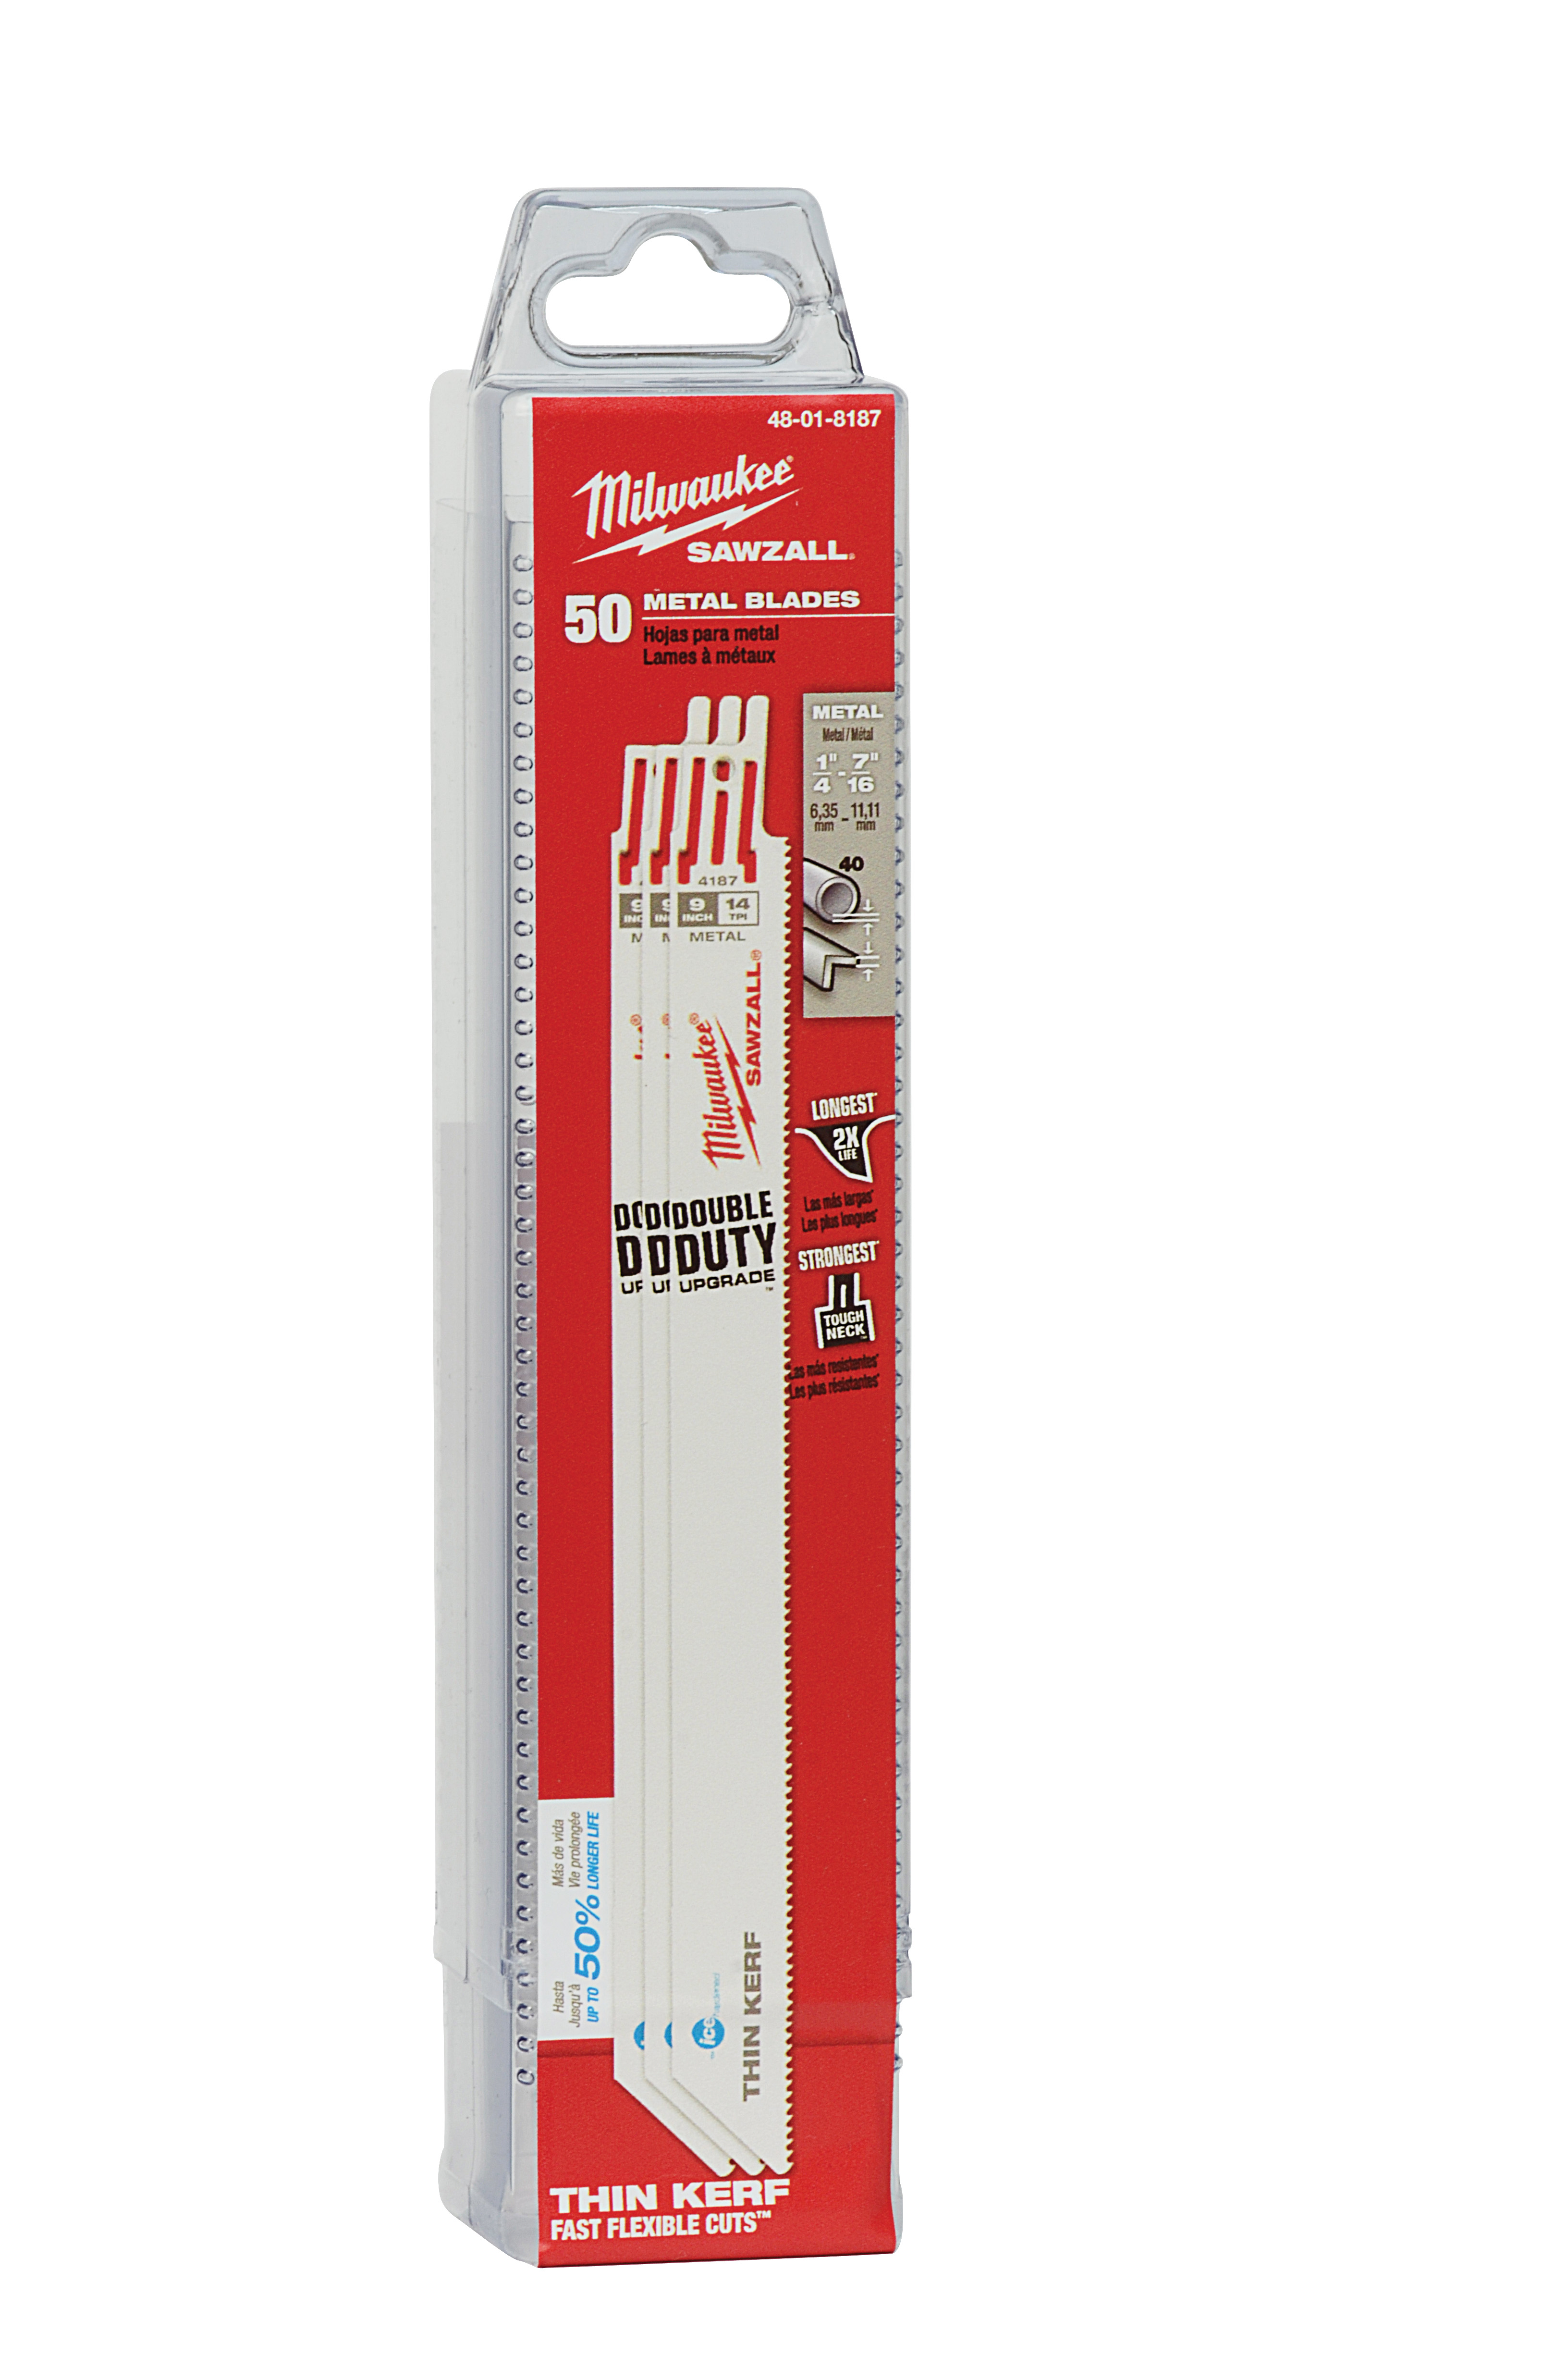 Milwaukee® Ice Hardened™ SAWZALL™ 48-01-8187 Double Duty Straight Back Thin Kerf Reciprocating Saw Blade, 9 in L x 3/4 in W, 14, Cryogenic Bi-Metal Body, Toothed Edge/Universal Tang